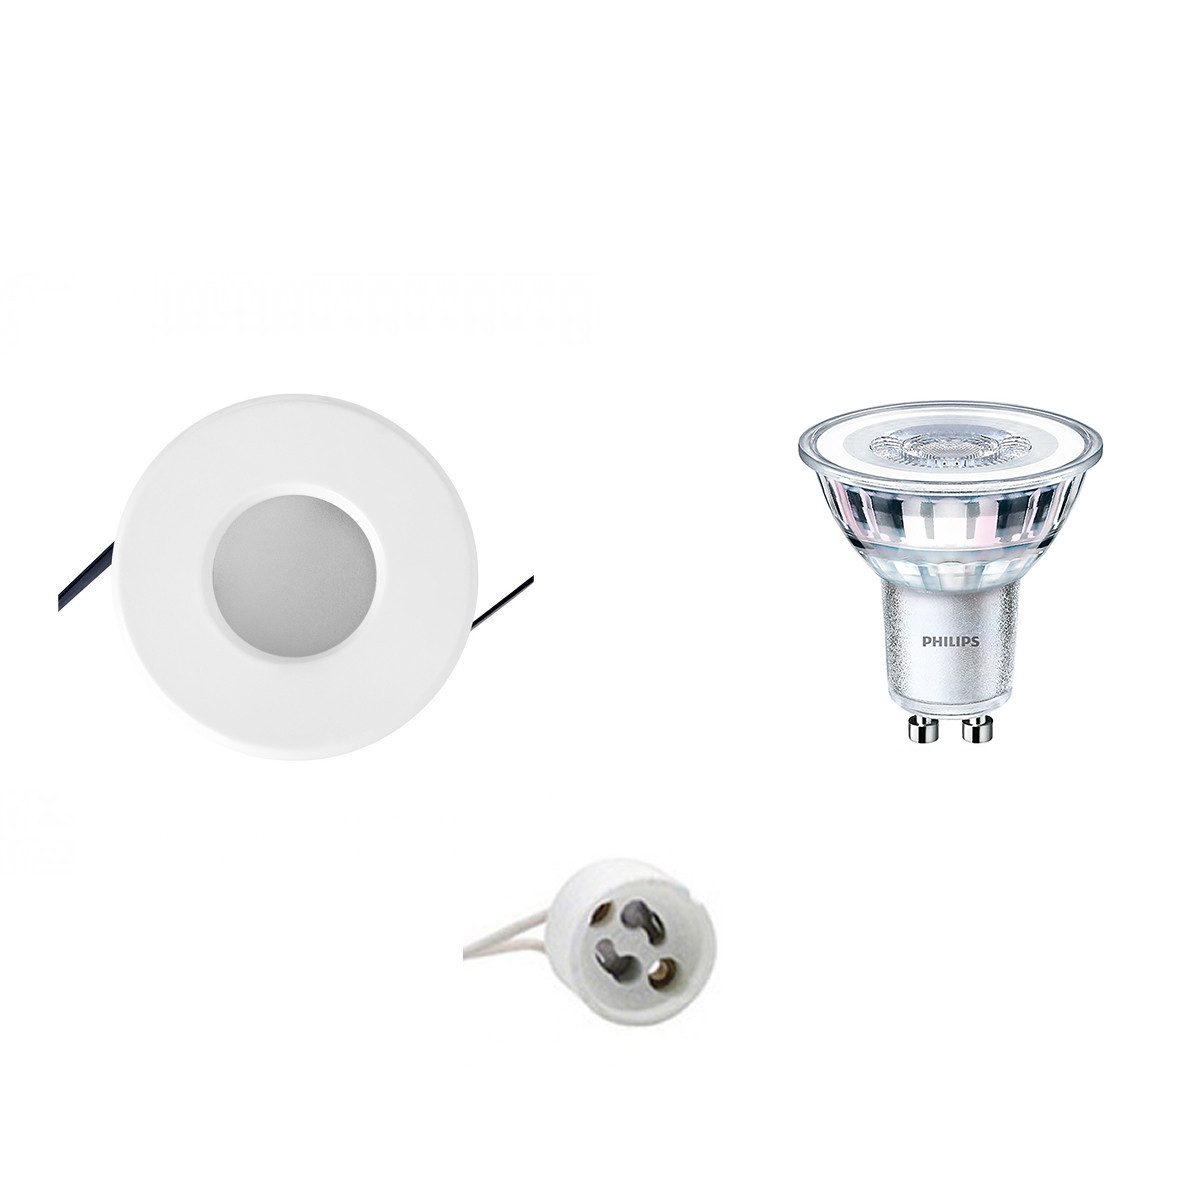 PHILIPS - LED Spot Set - CorePro 830 36D - GU10 Fitting - Waterdicht IP65 - Dimbaar - Inbouw Rond -